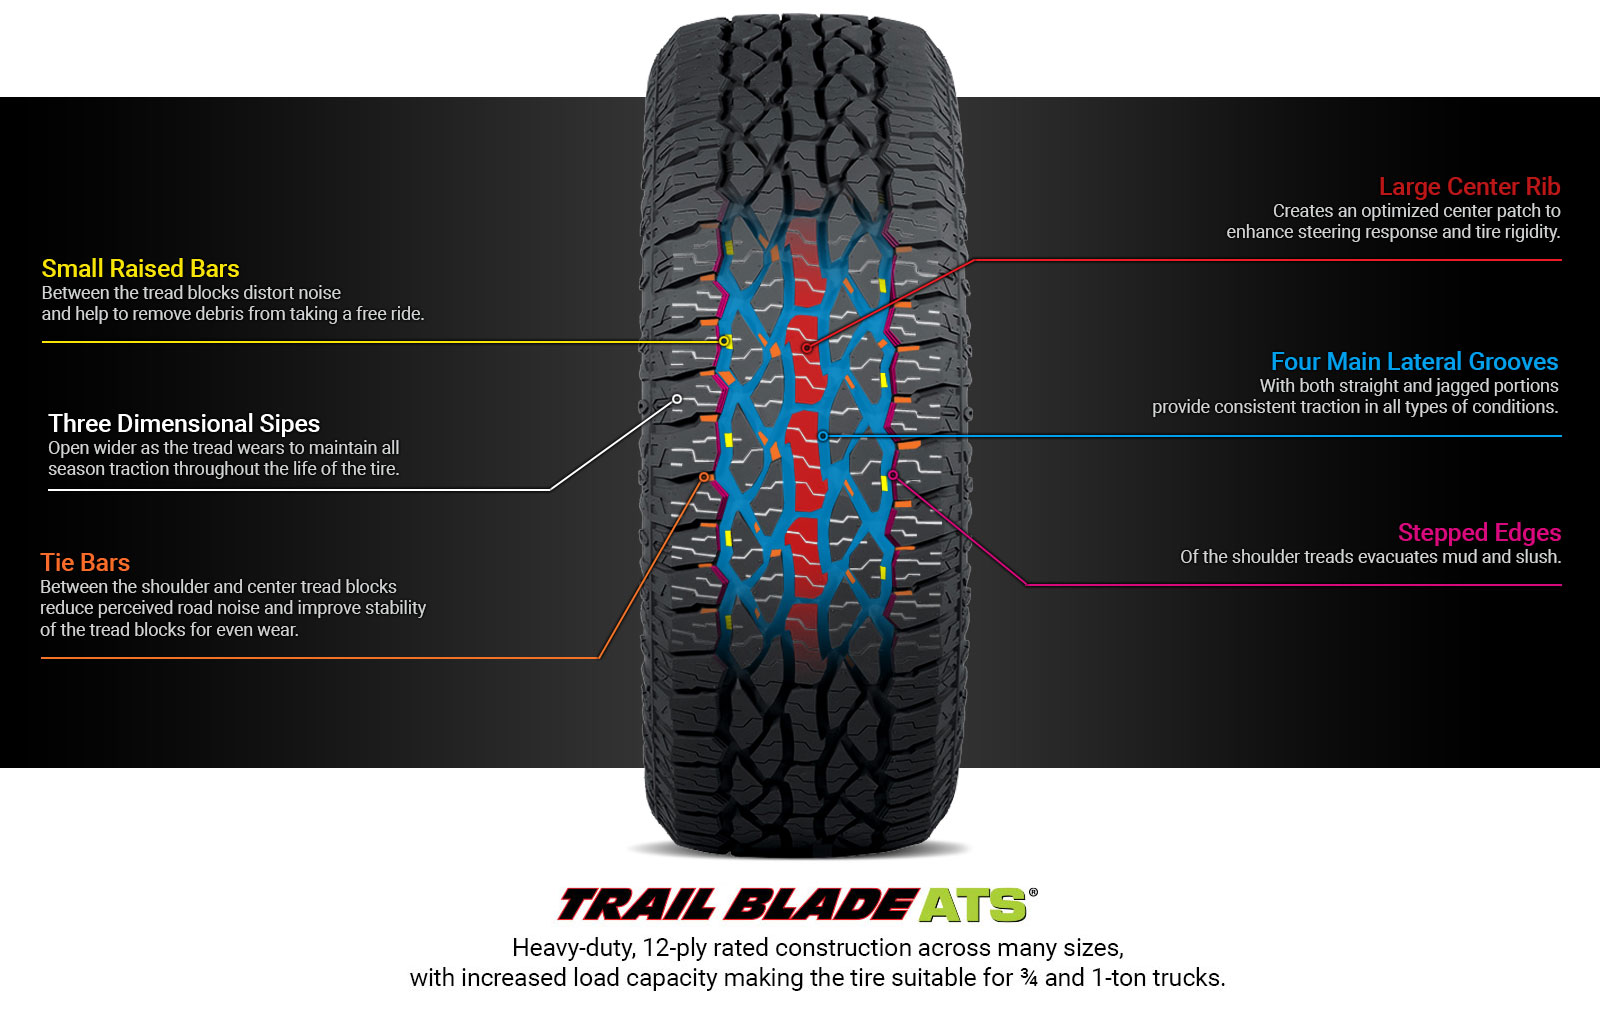 Trail Blade ATS Tire Technology